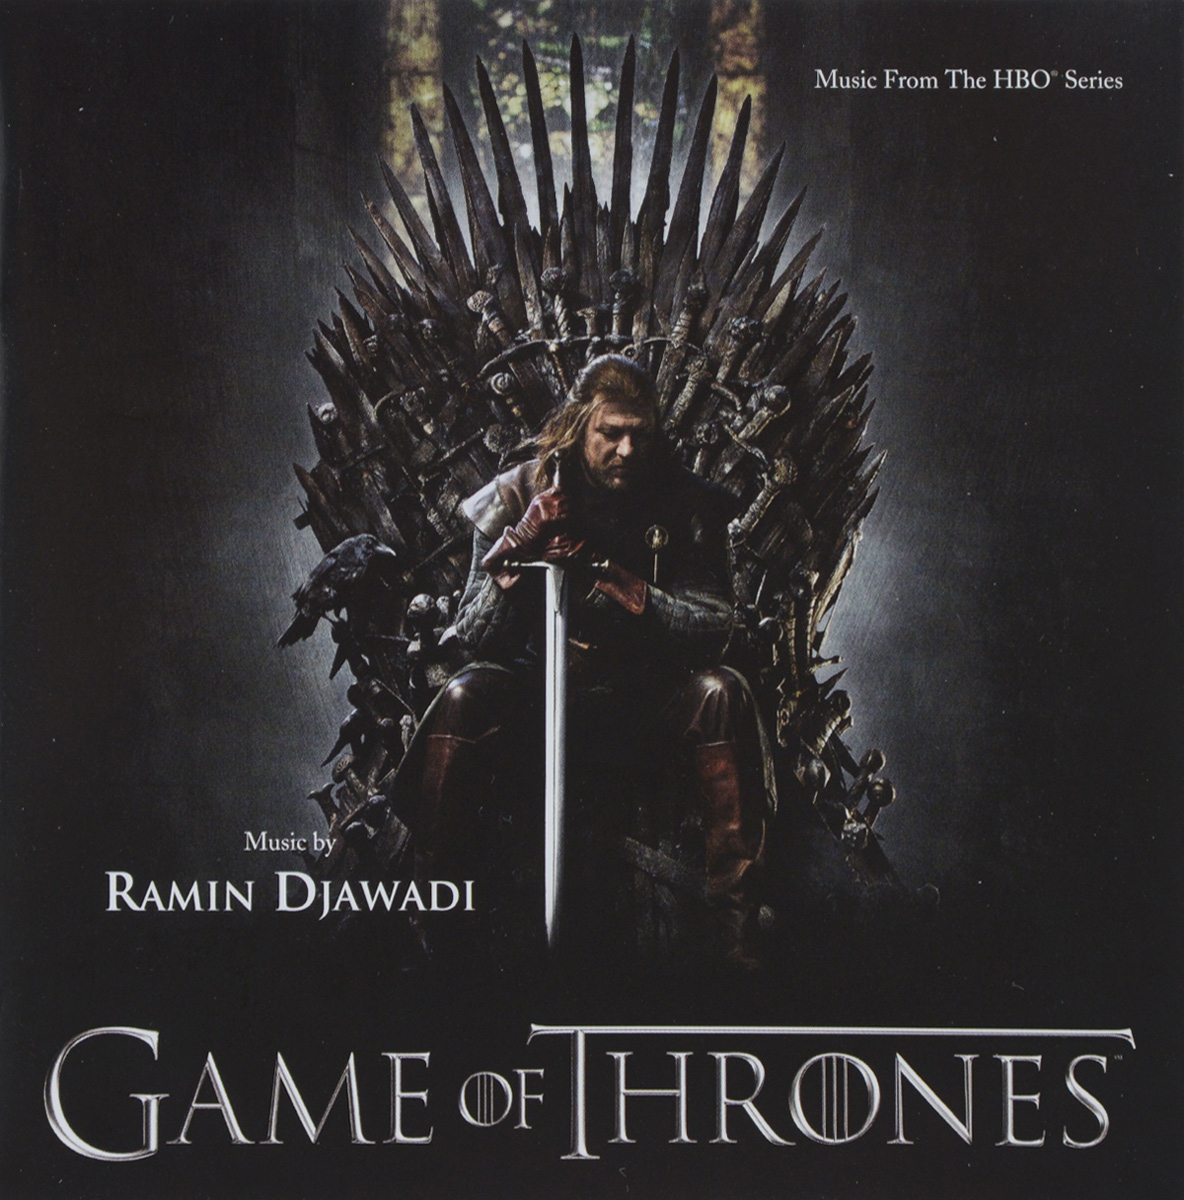 Ramin Djawadi. Game Of Thrones (Music From The HBO Series)